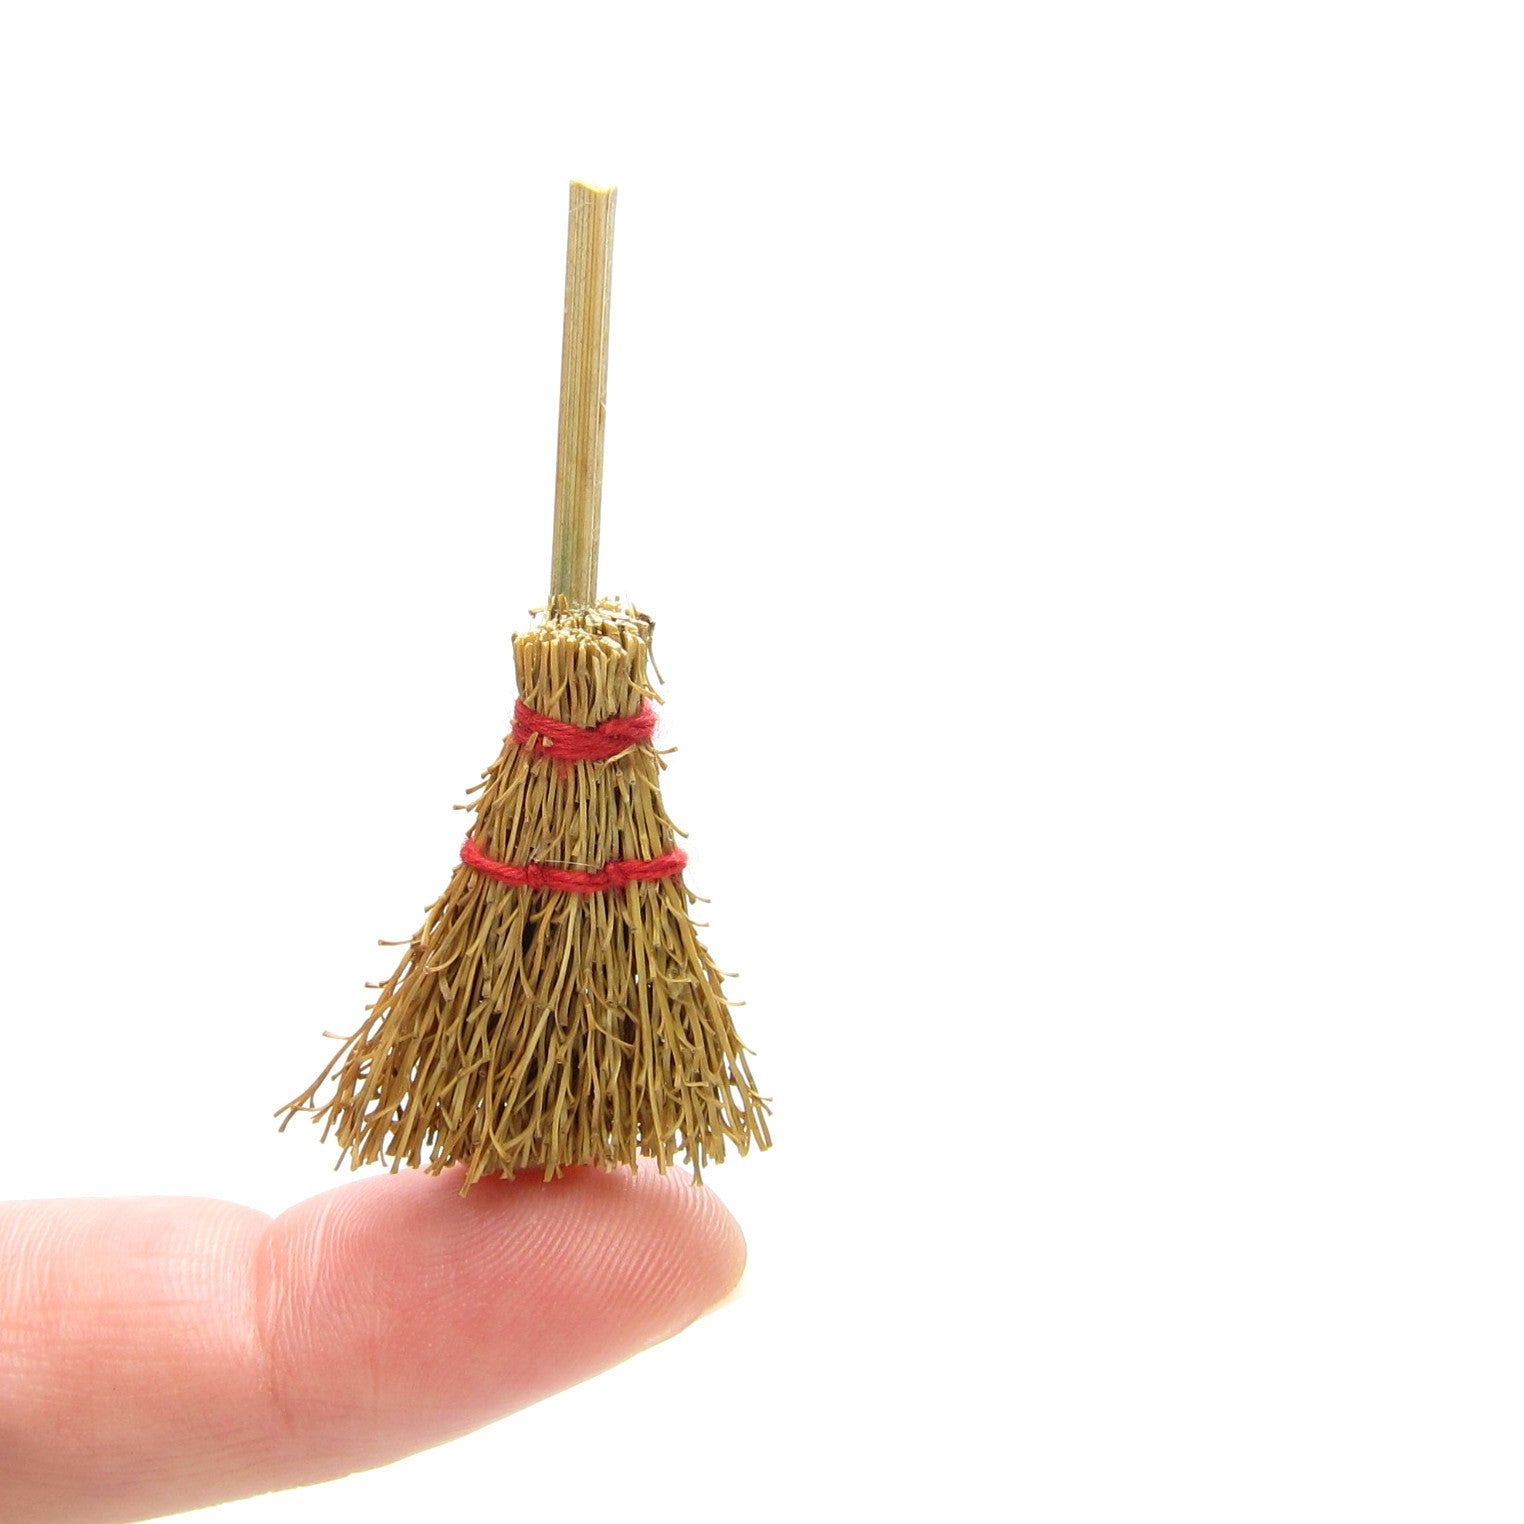 Miniature natural straw broom